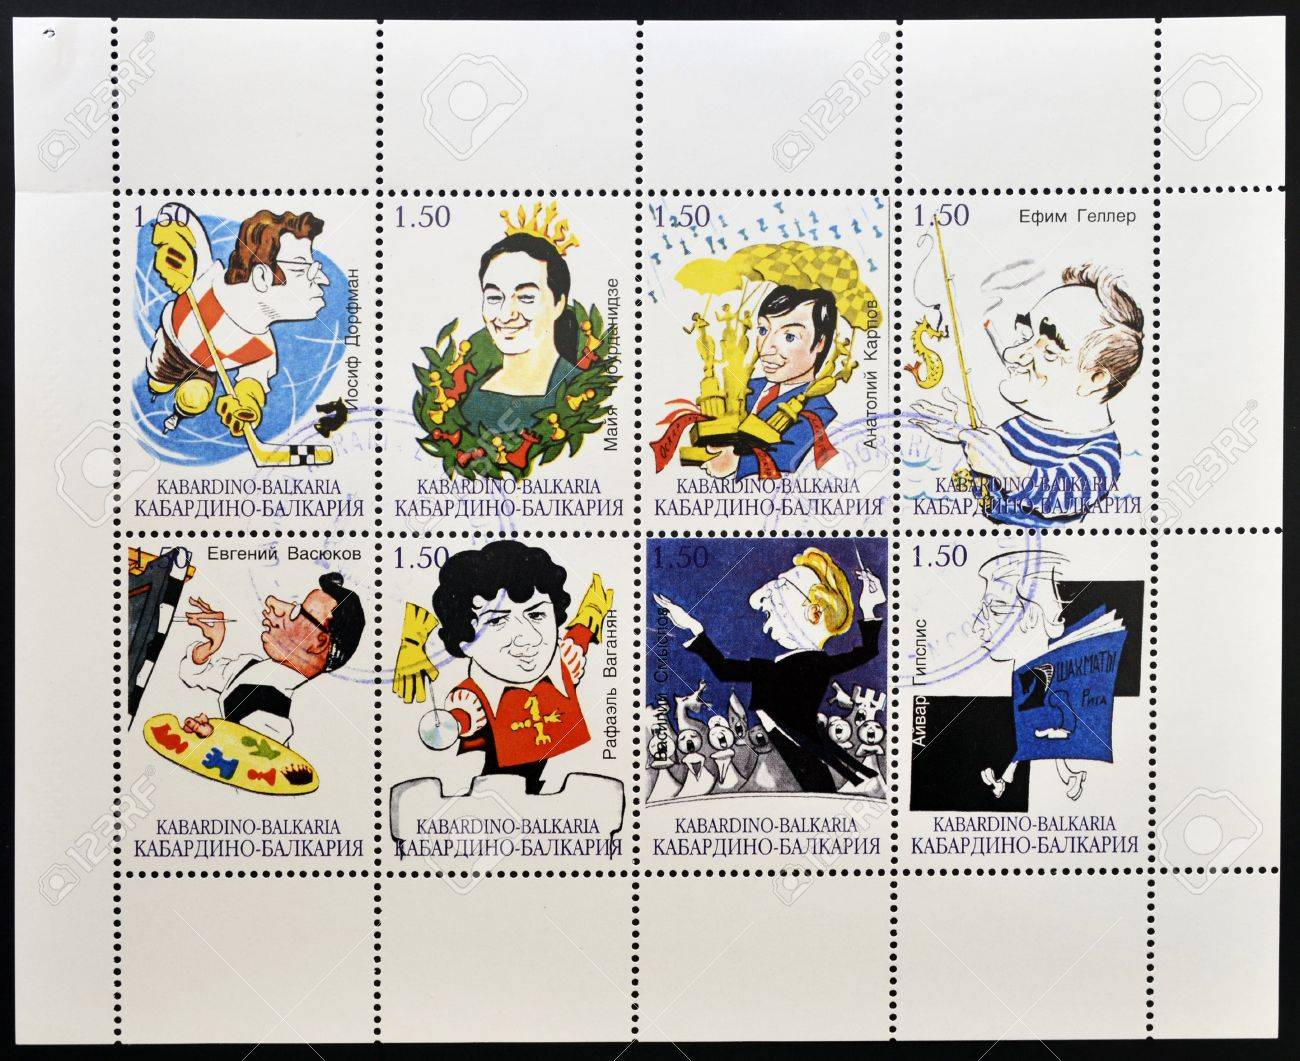 RUSSIA - CIRCA 1997: A stamp printed in Russia,collection of eight stamps showing caricatures of famous people of the country related to chess, circa 1997 Stock Photo - 14596884